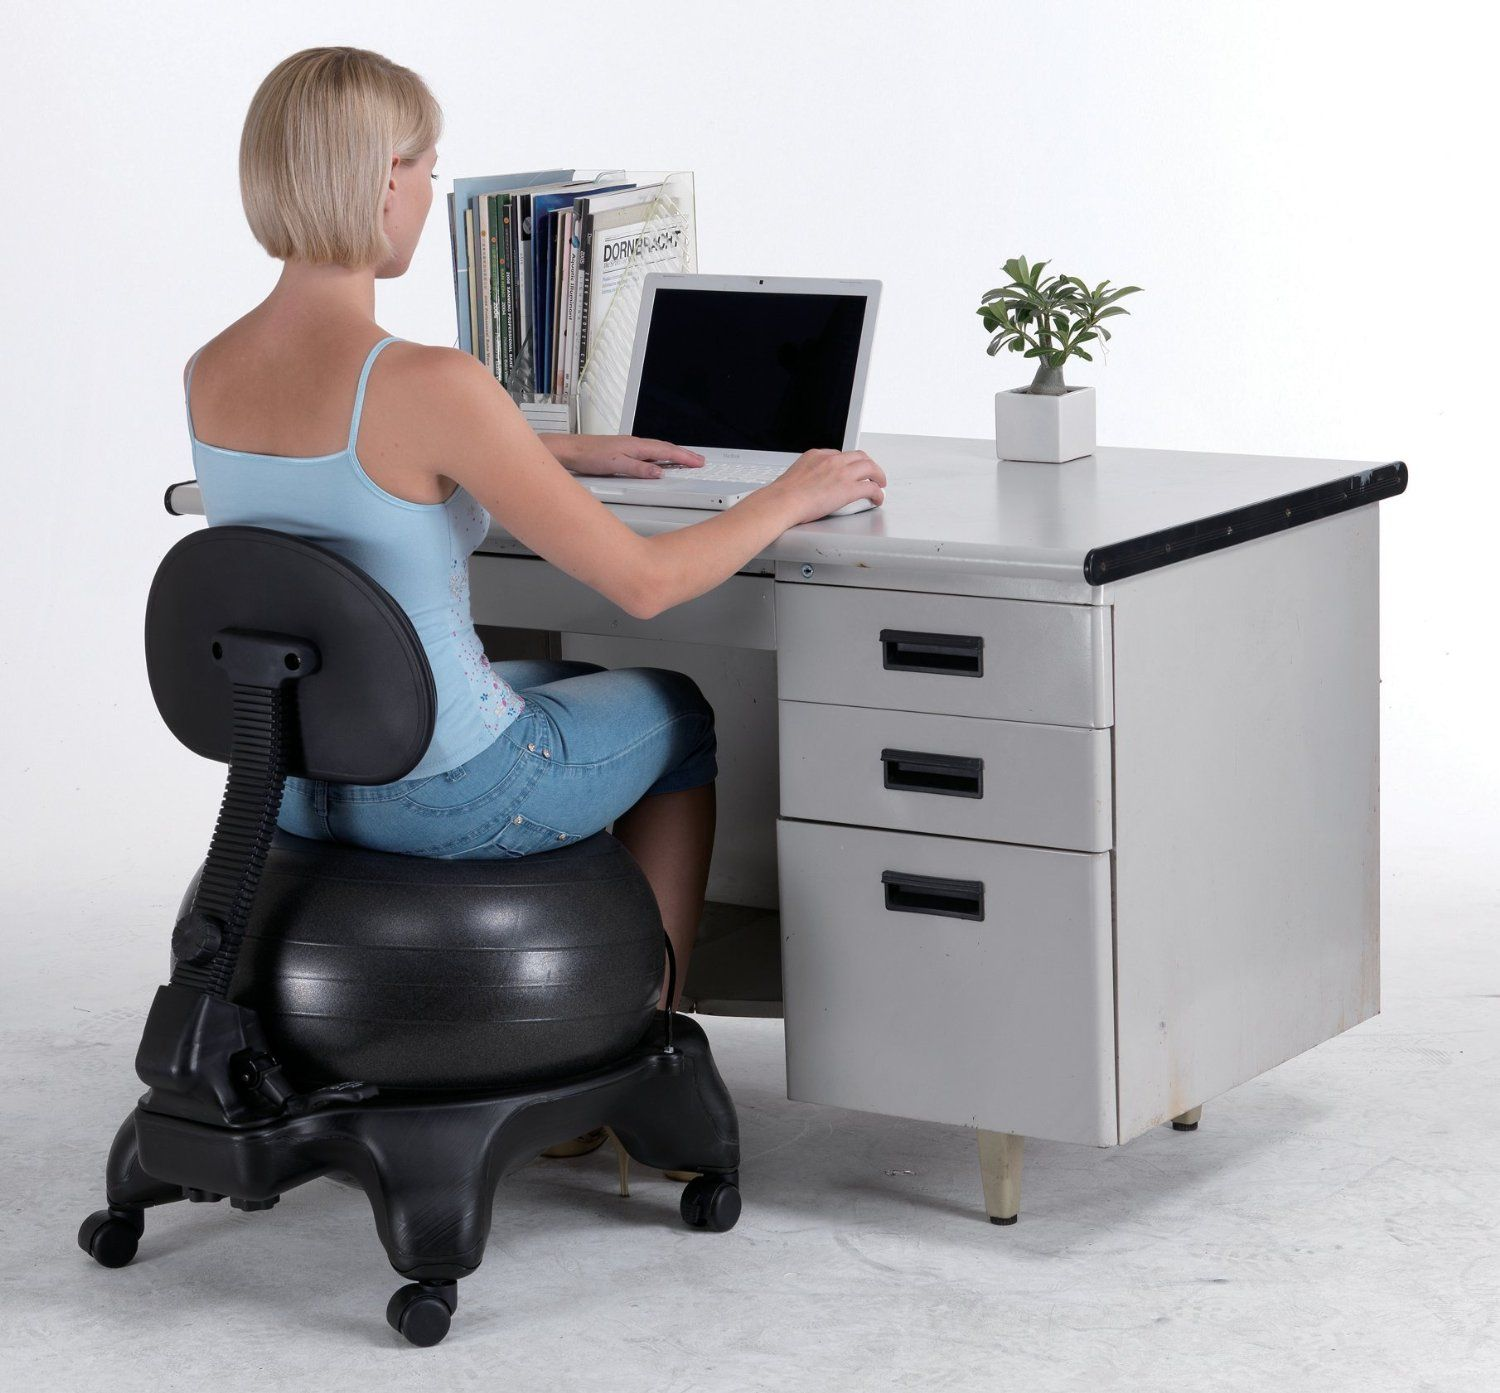 Yoga Ball ChairsBalance Ball For Stability Guide  Review - Ball chairs for office